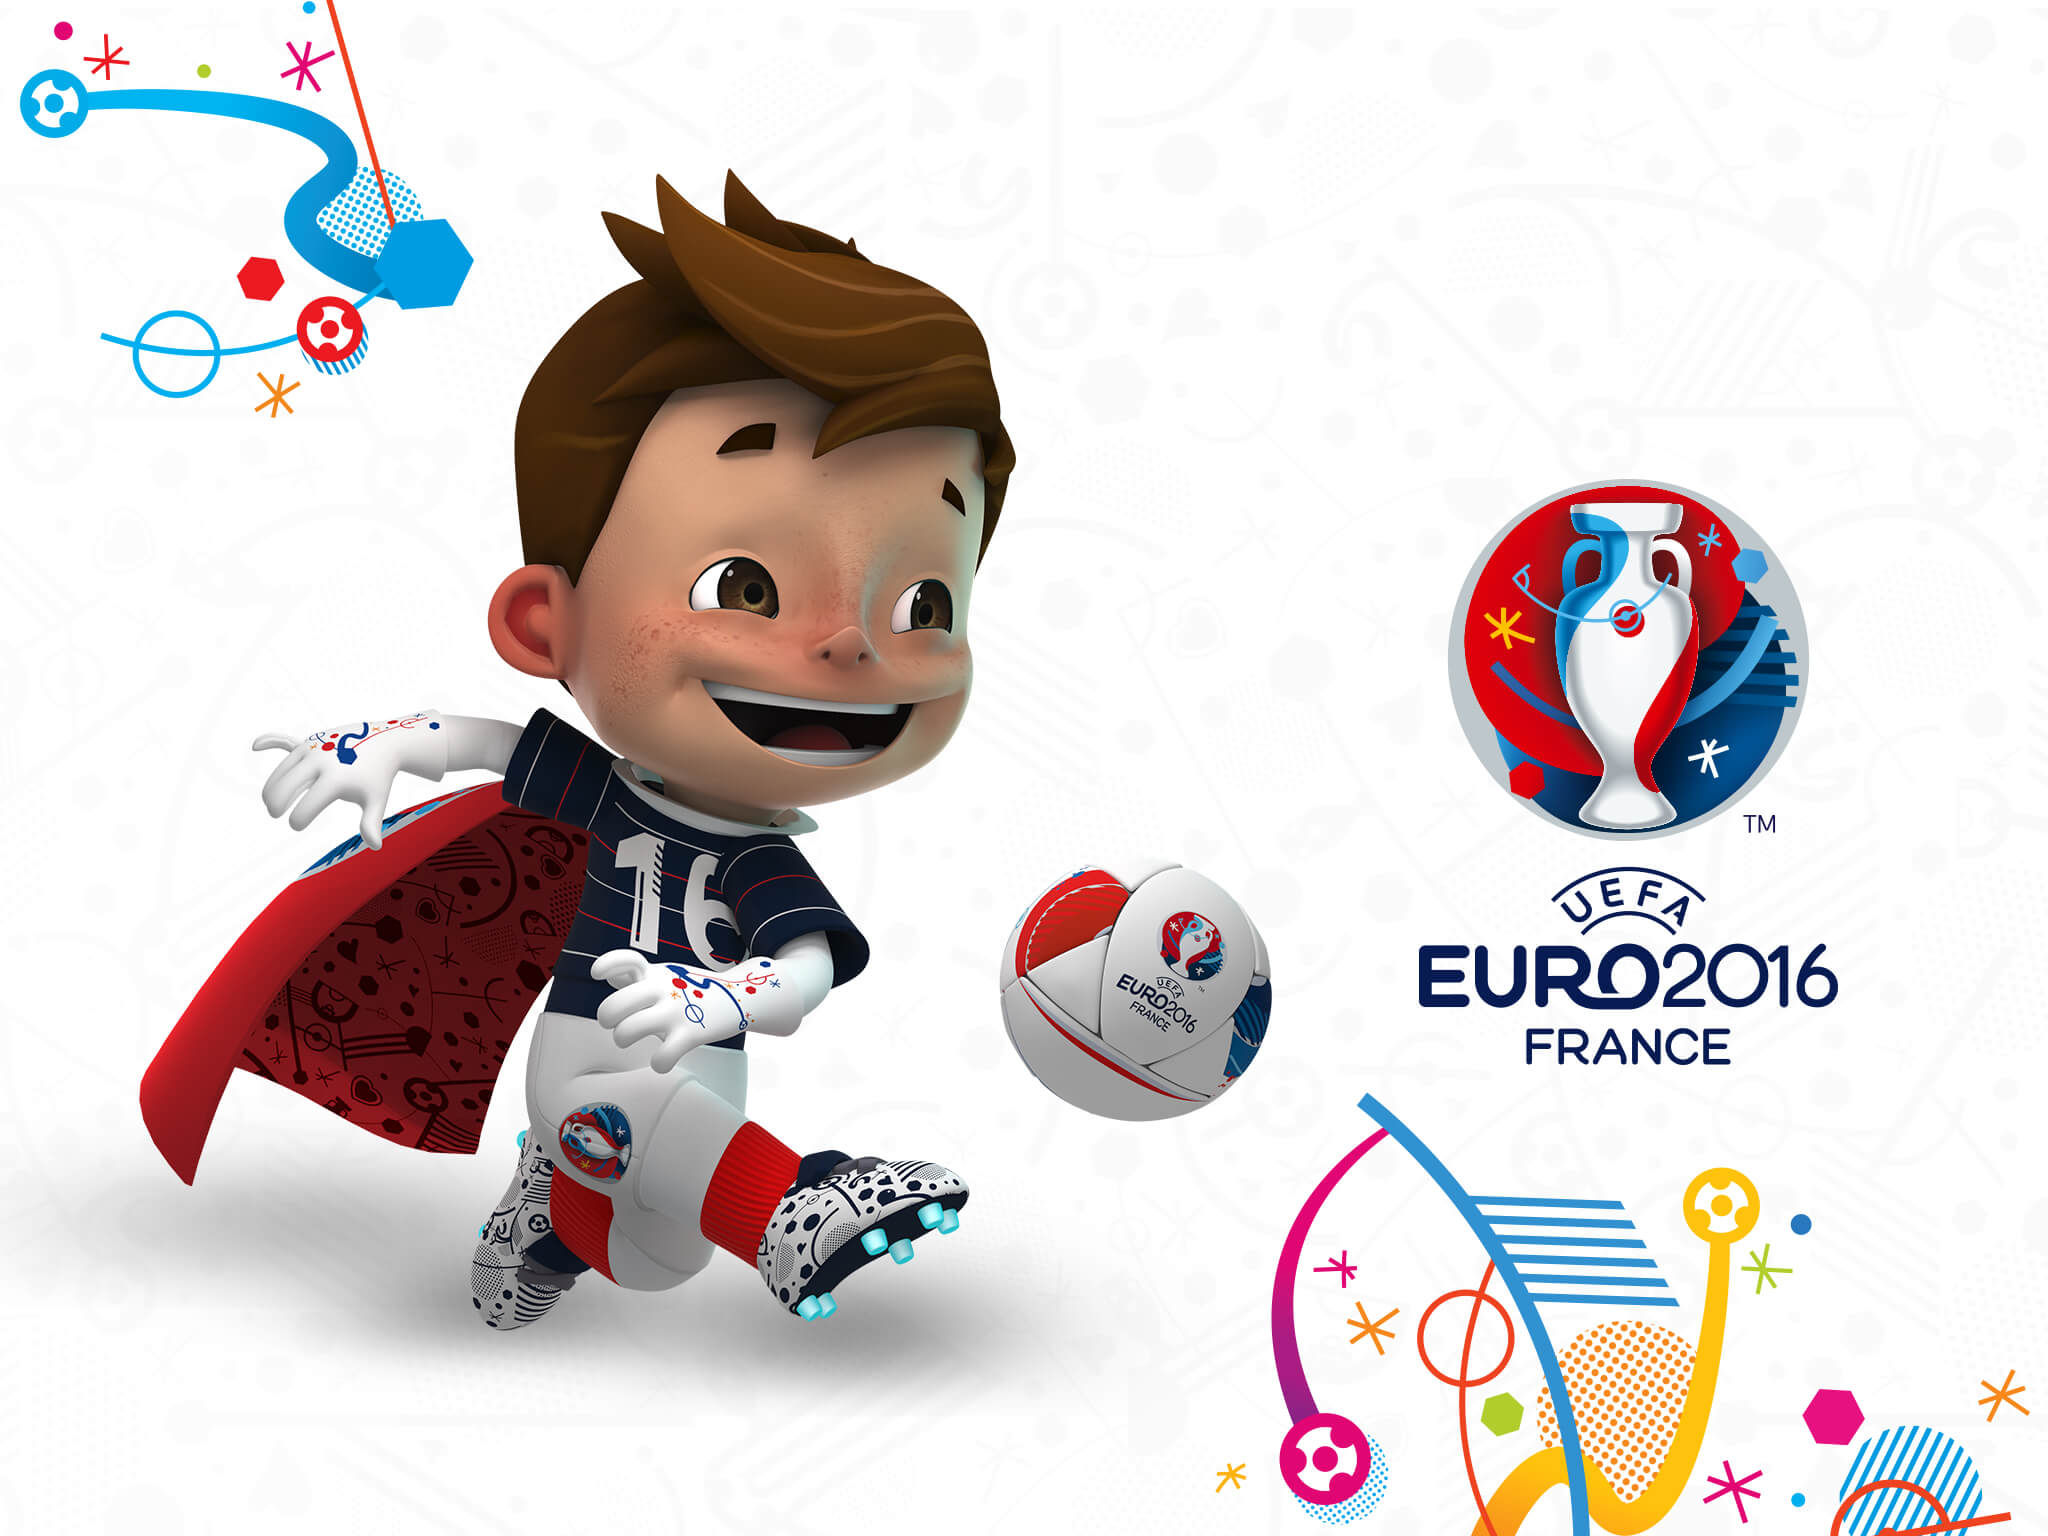 C6/e6/euro-2016-schedule-fixtures-in-ist-the-celebration-starts-today.jpg